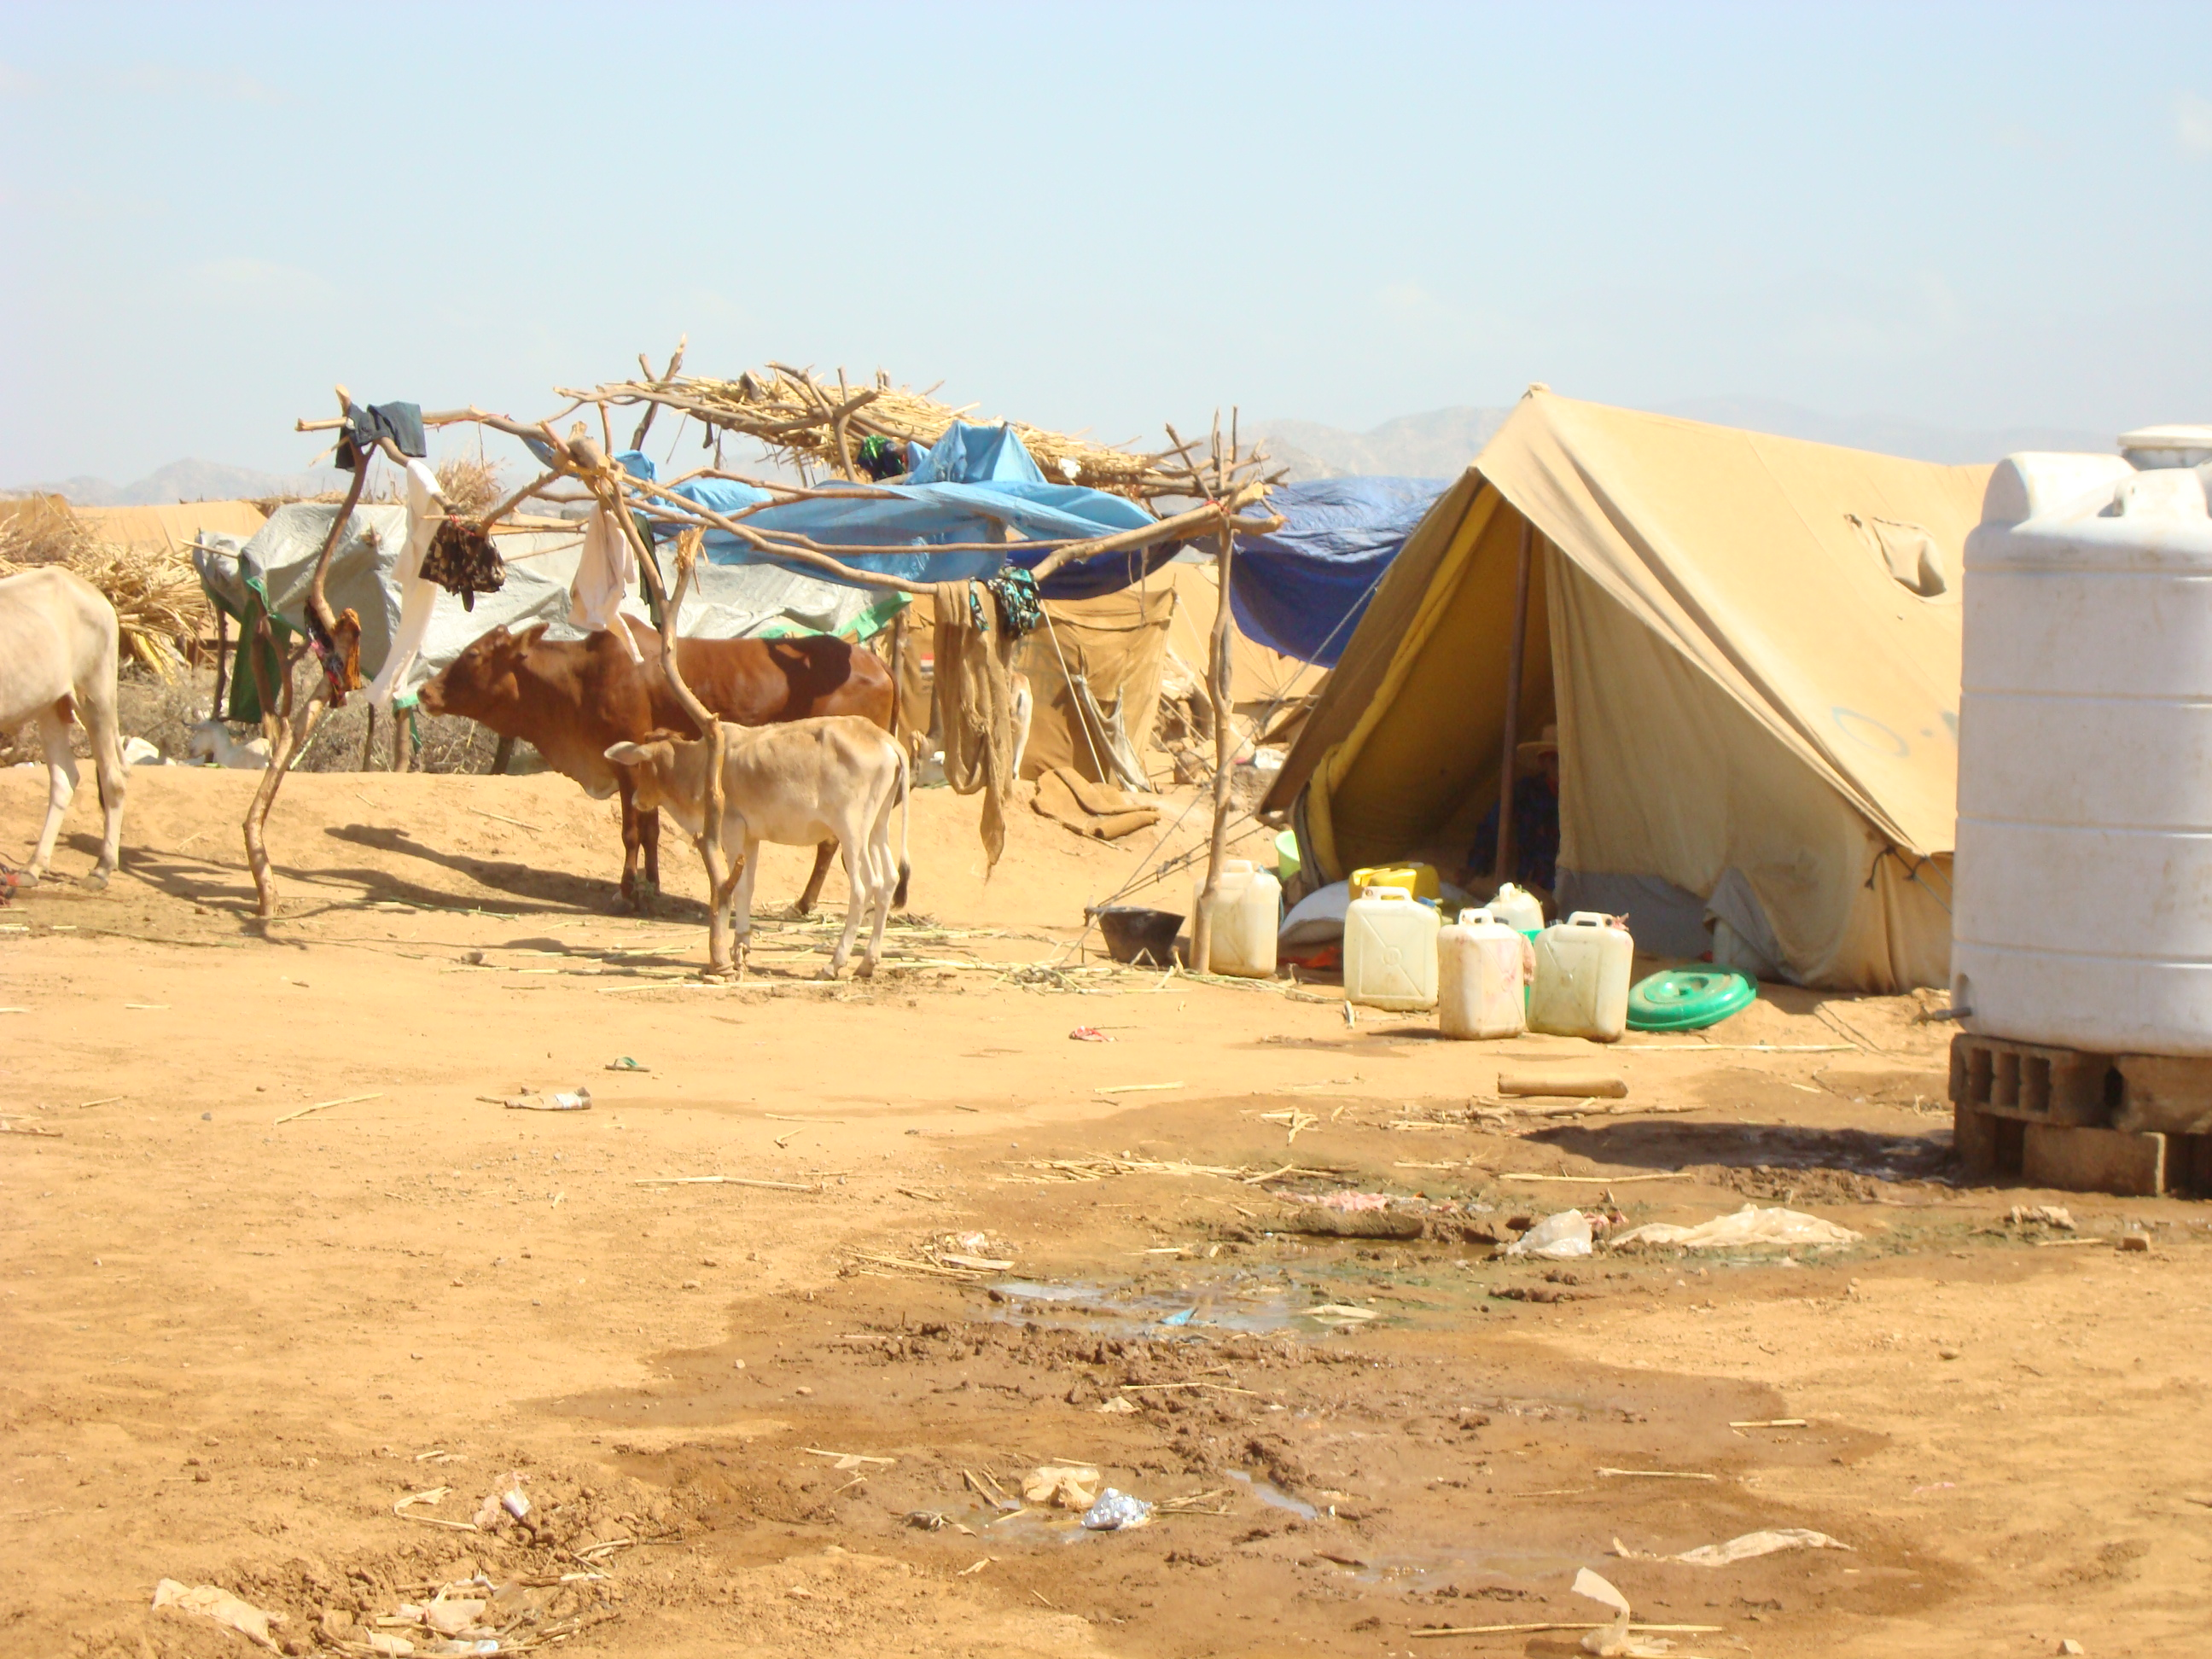 Dealing with livestock brought to the al-Mazraq camp by IDP is a challenge